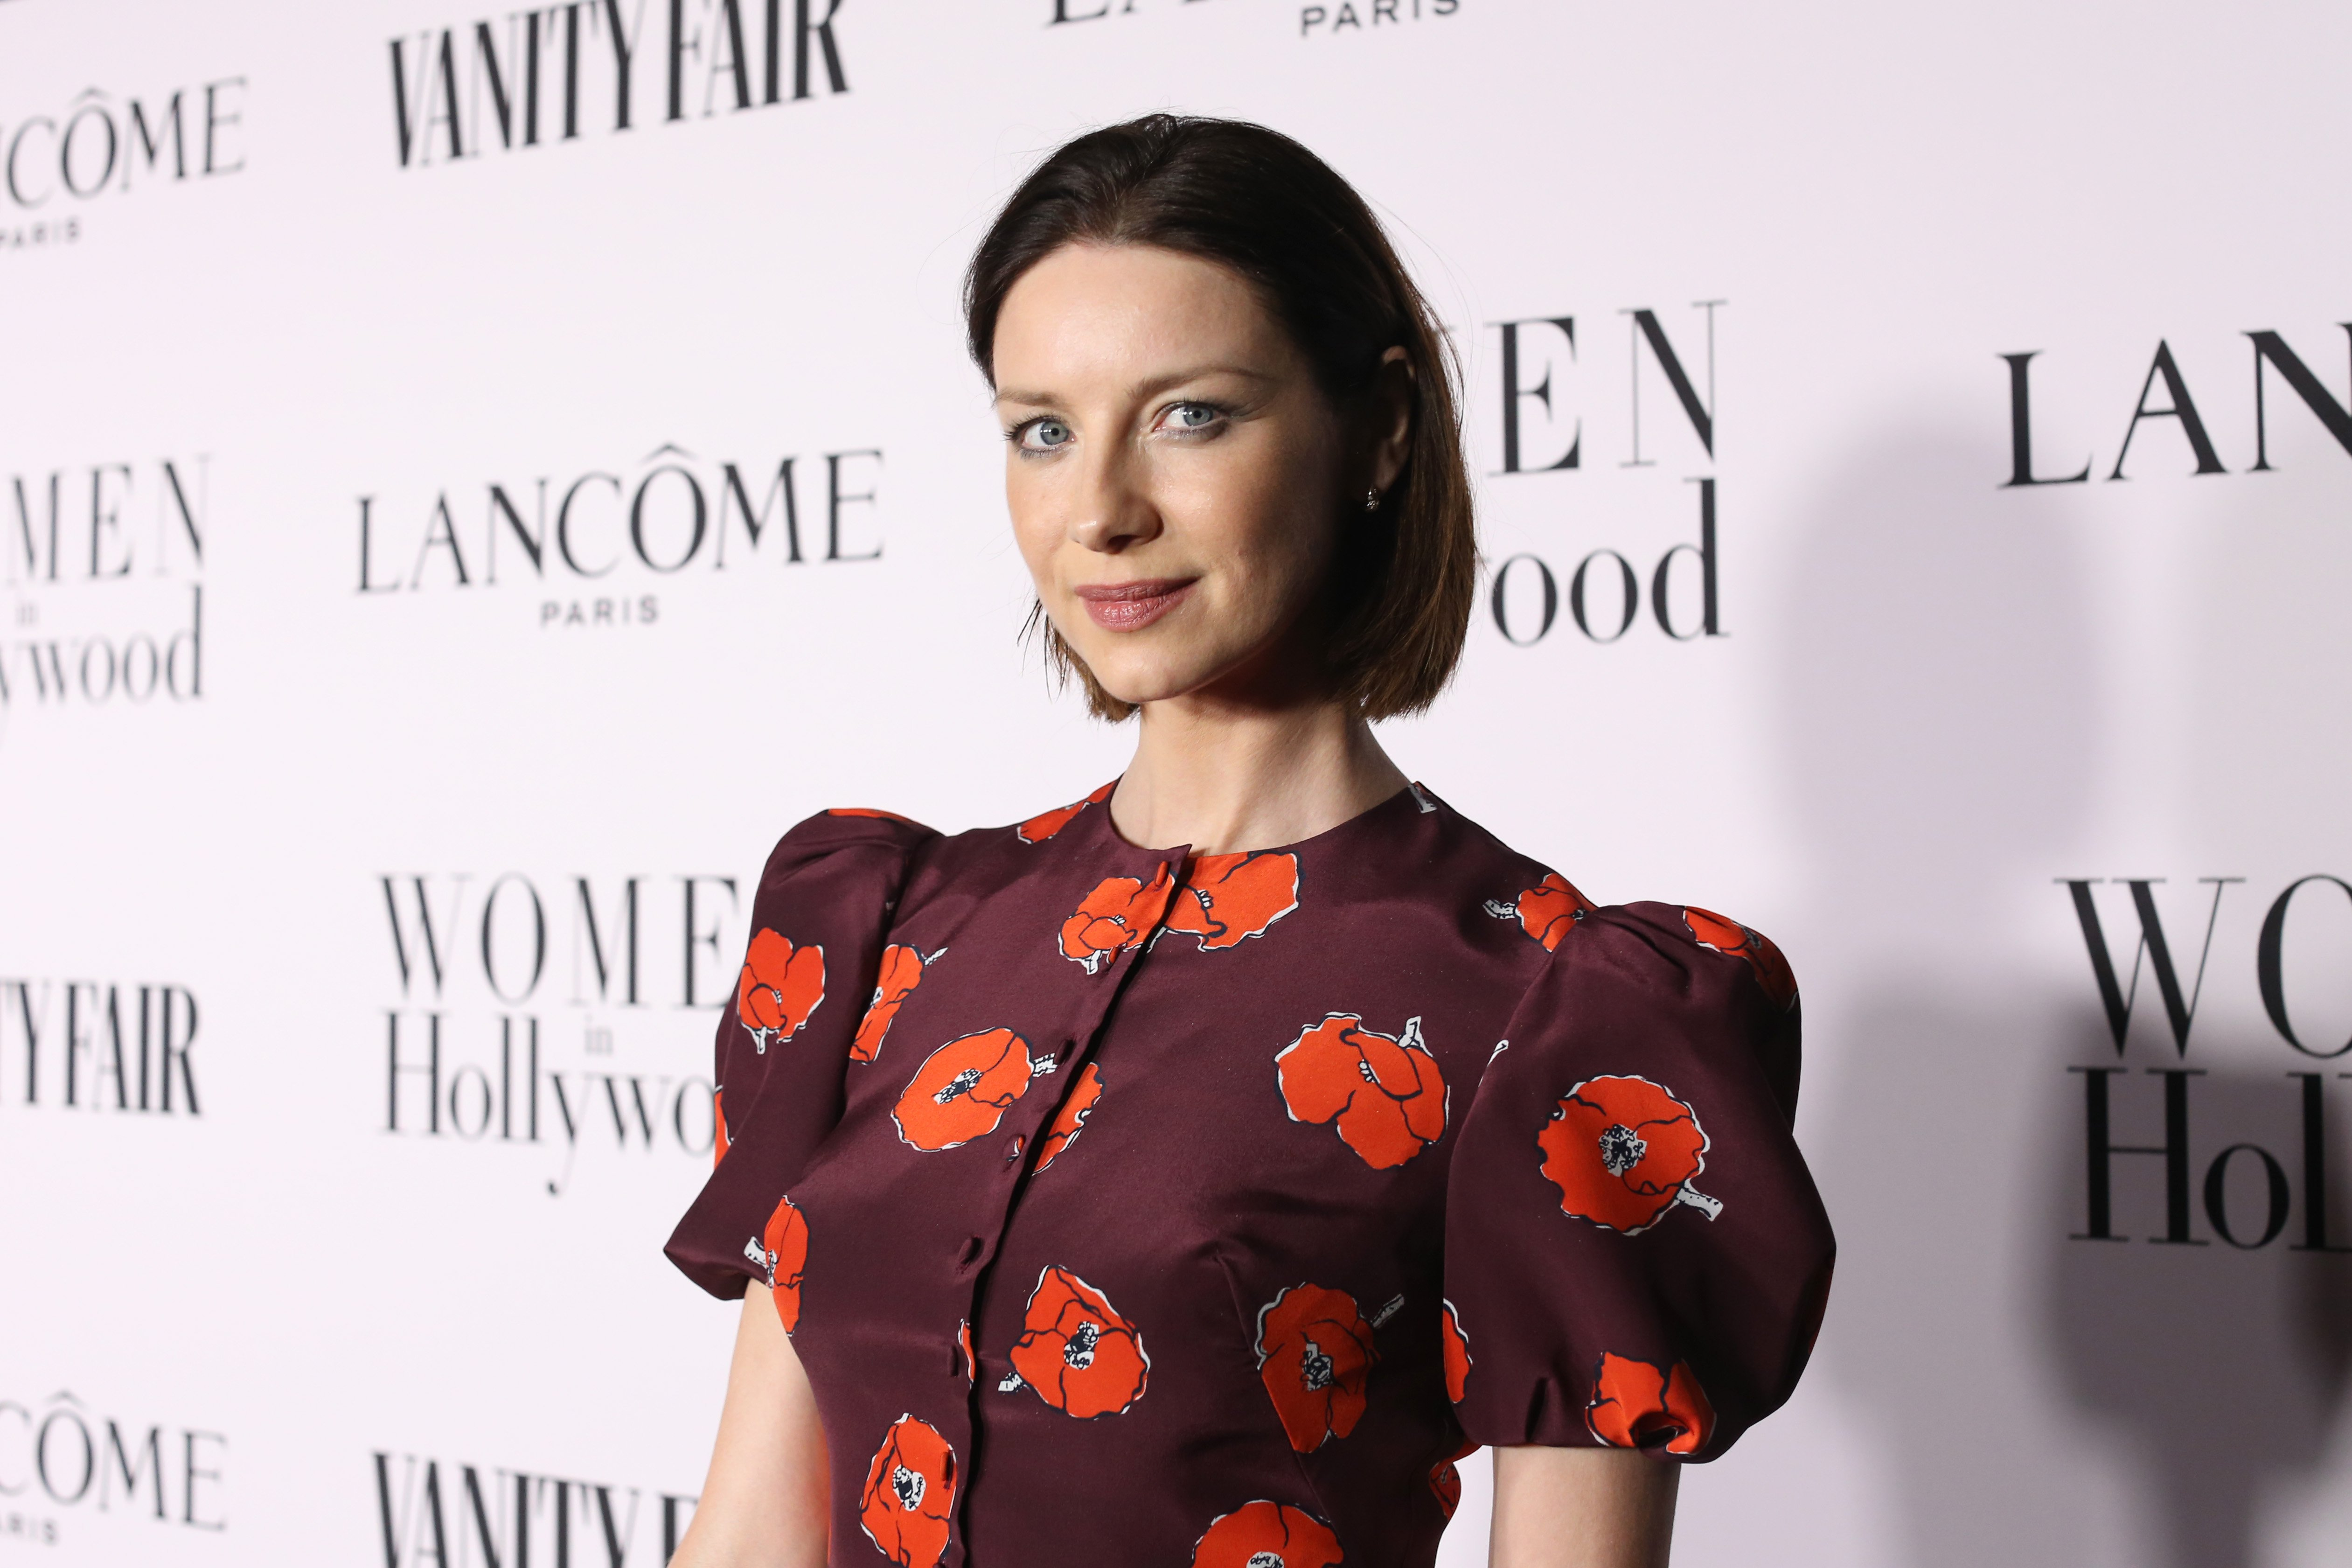 Caitriona Balfe attends Vanity Fair and Lancôme Toast Women in Hollywood / Getty Images